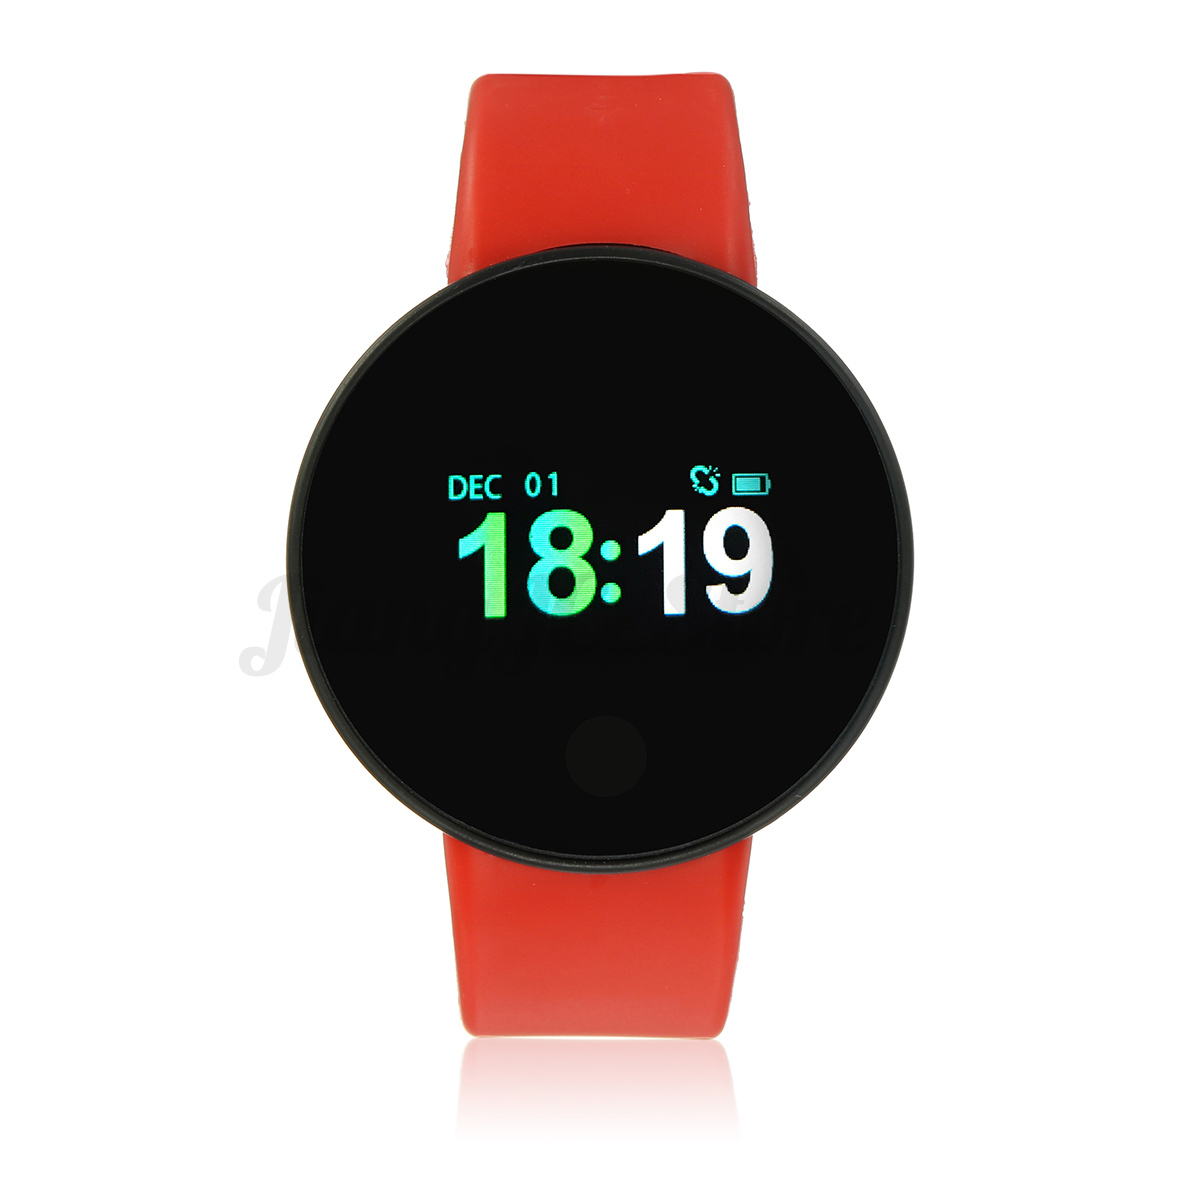 50M-Waterproof-Sports-Smart-Watch-Heart-Rate-Blood-Pressure-Monitor-iOS-Android thumbnail 14